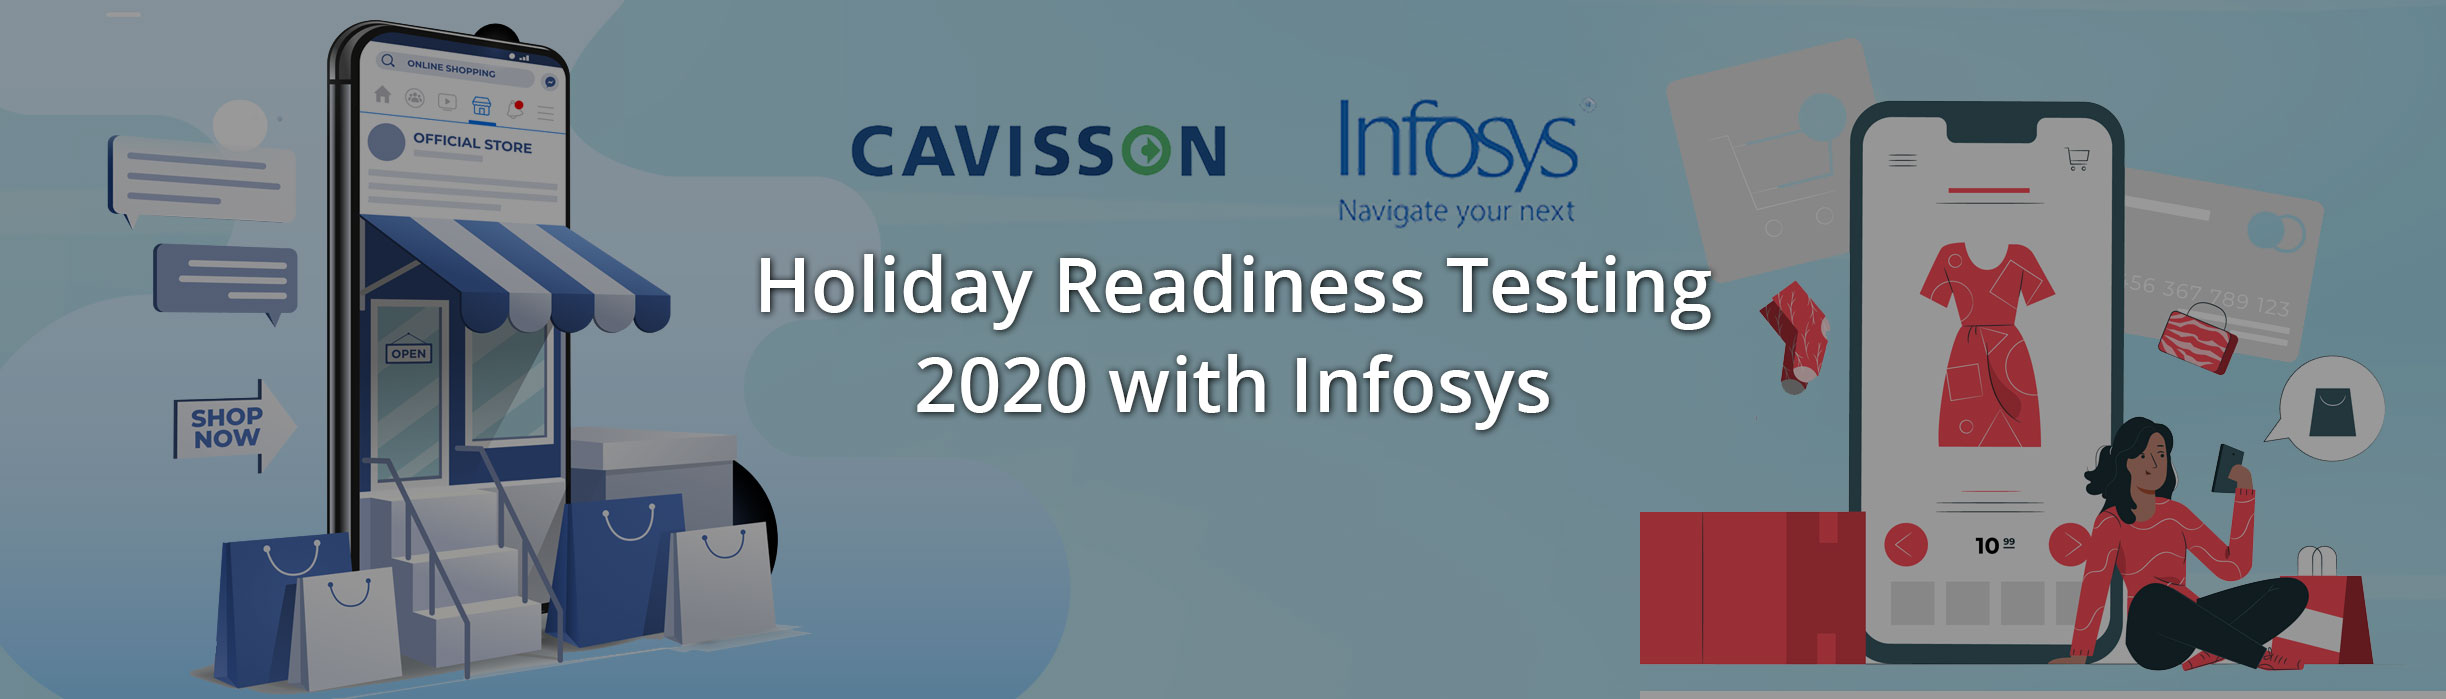 Holiday Readiness Testing - 2020 with Infosys